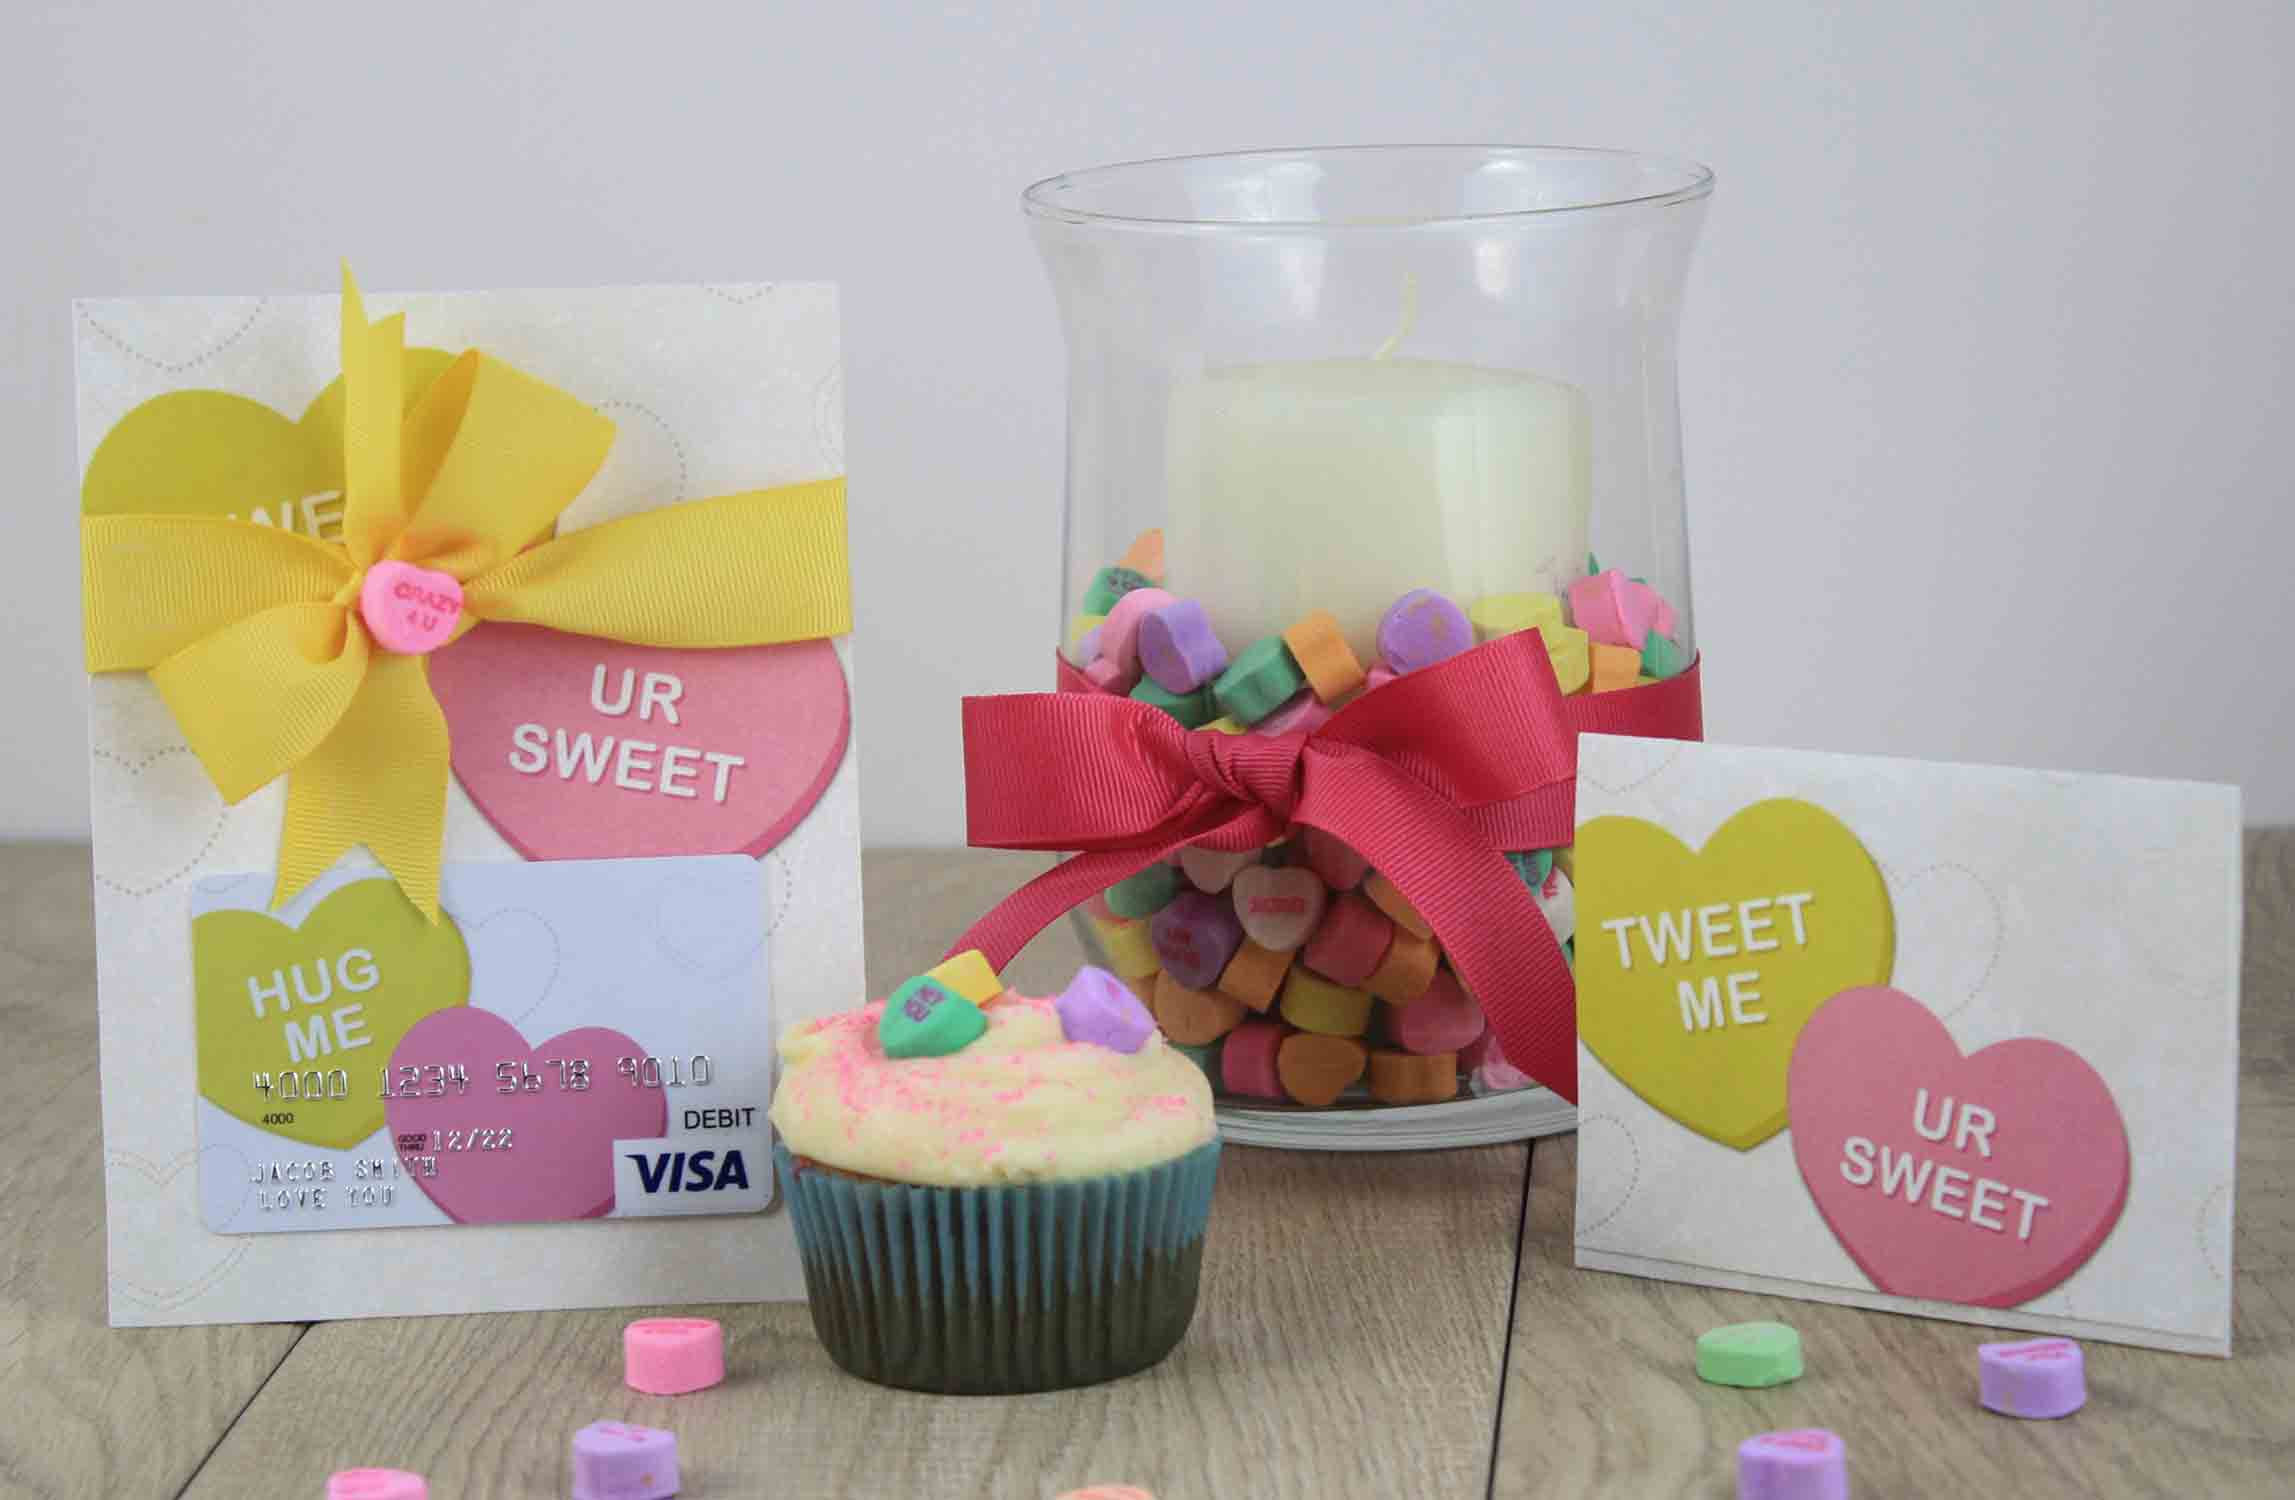 Gift Card Girlfriends Guide to Valentines Day 2015 – Make Your Own Valentines Card for Free